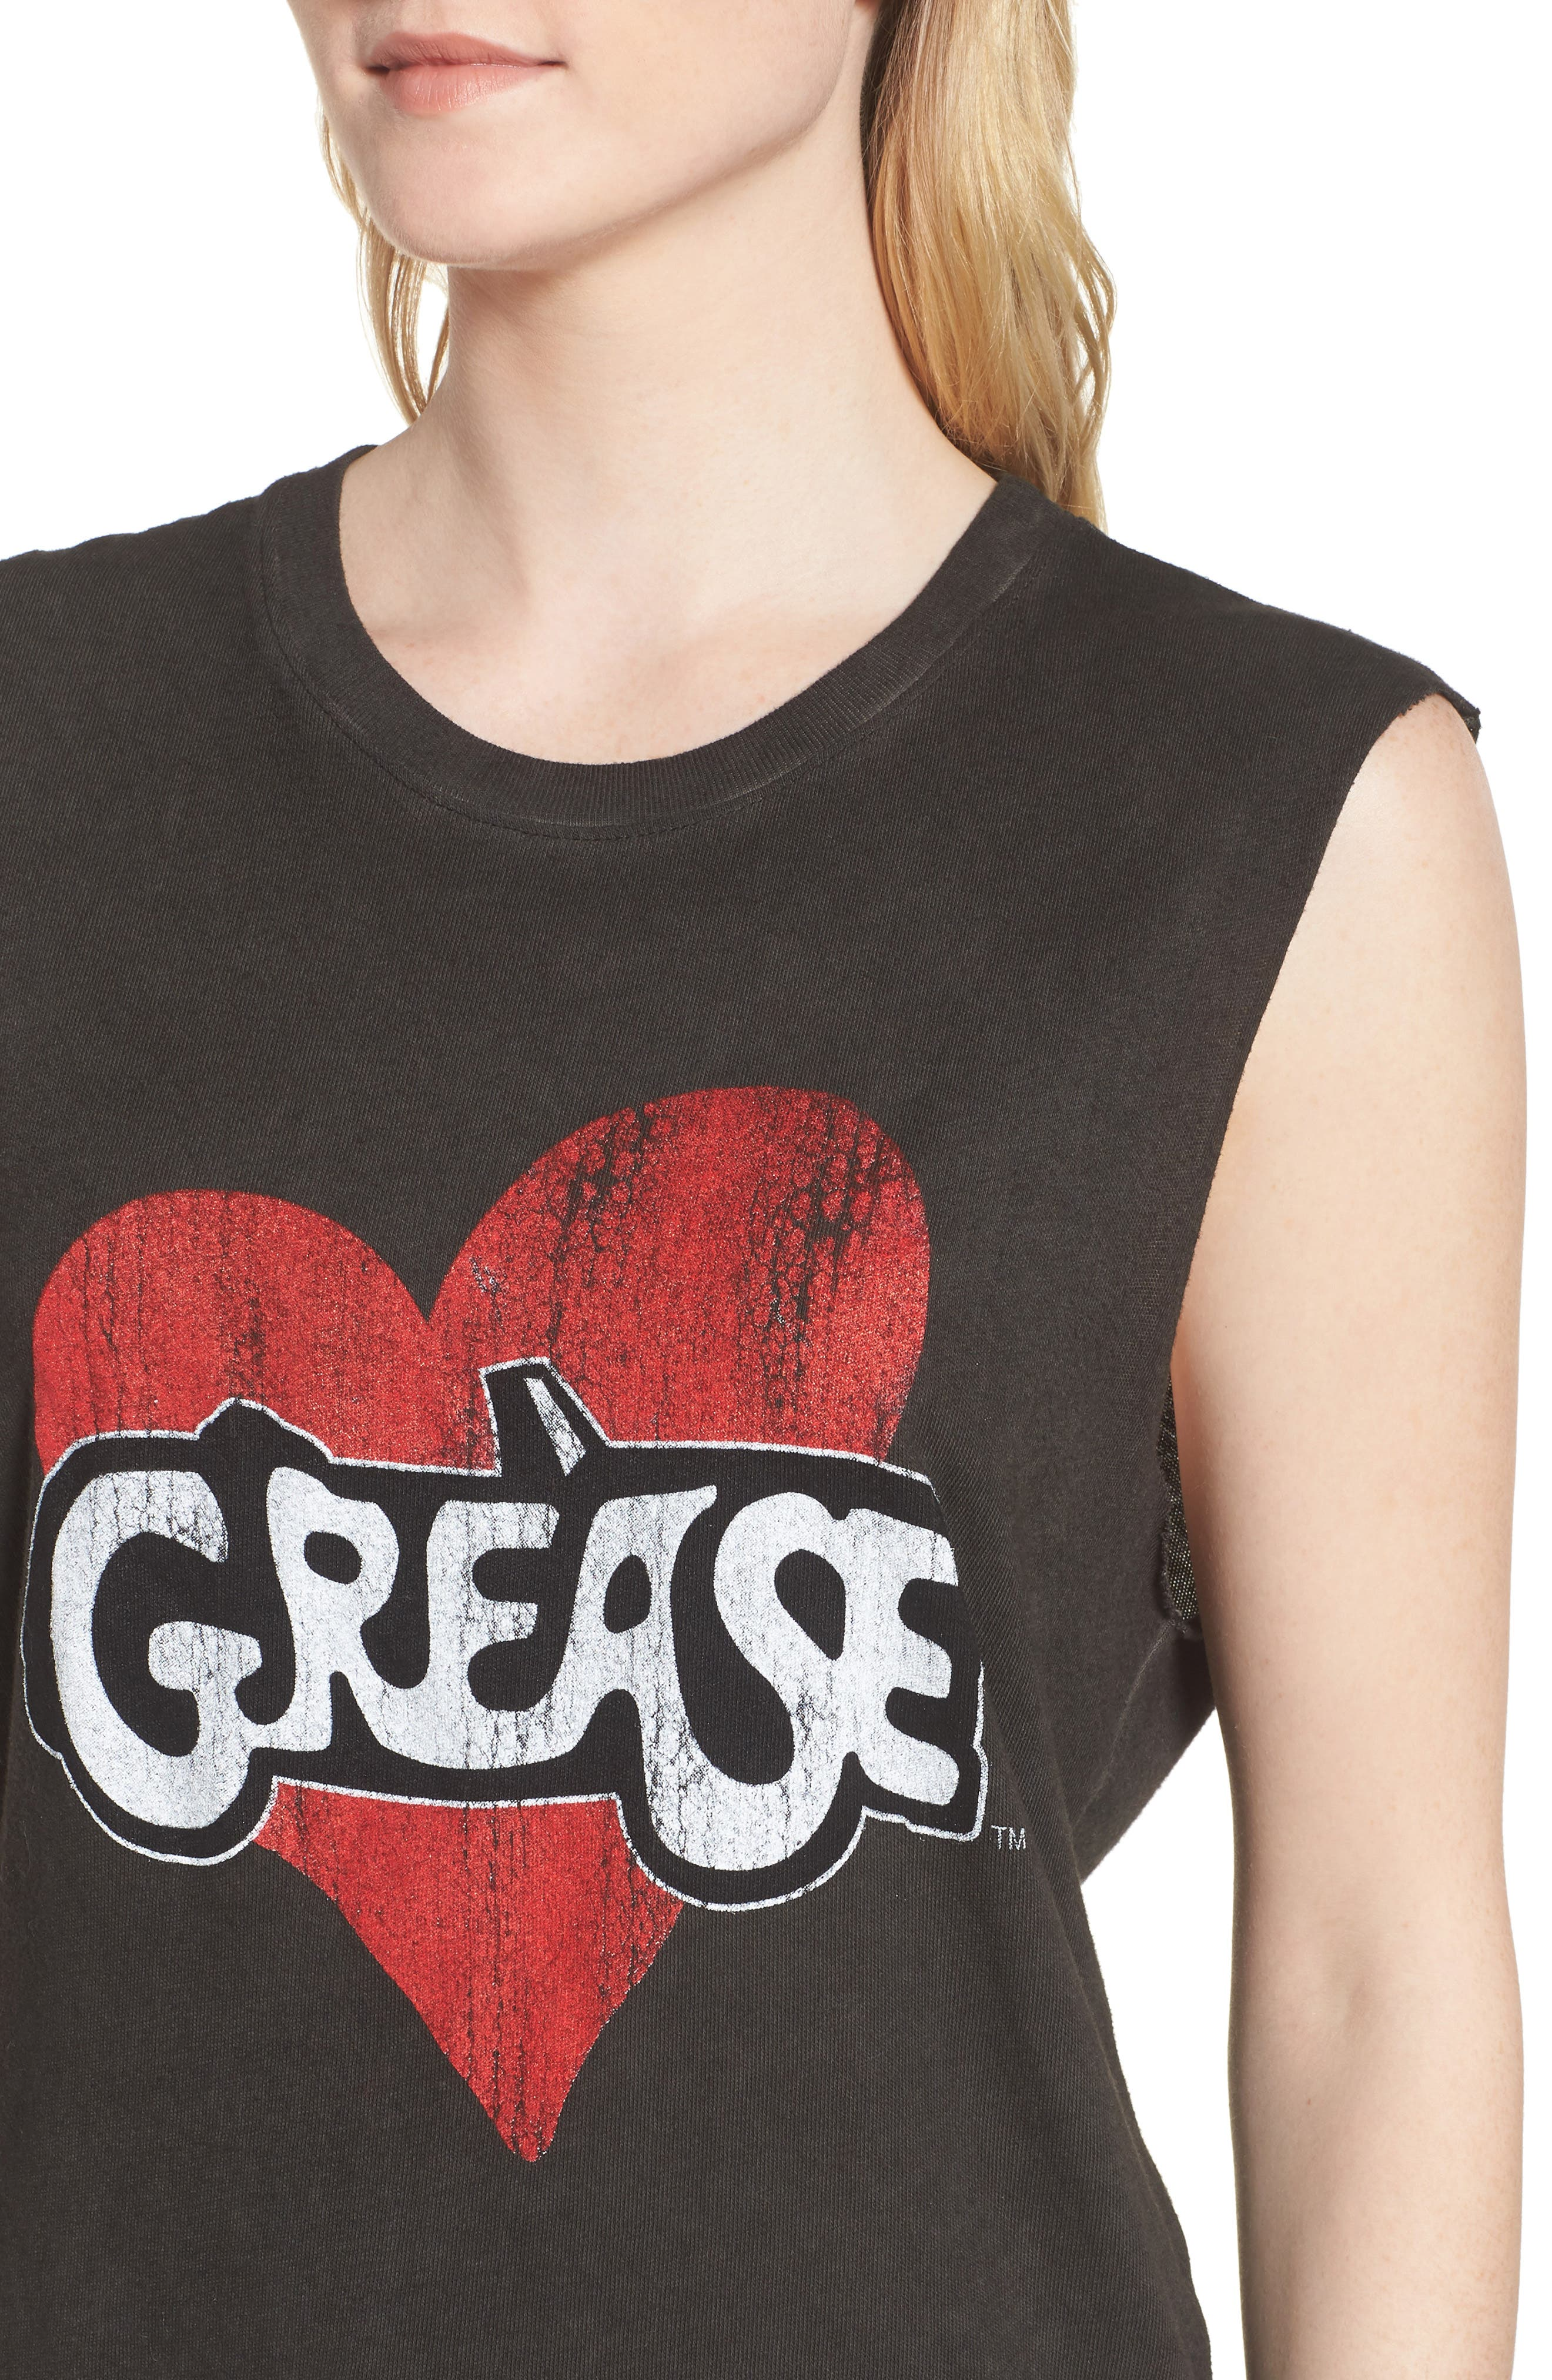 x Grease Muscle Tee,                             Alternate thumbnail 4, color,